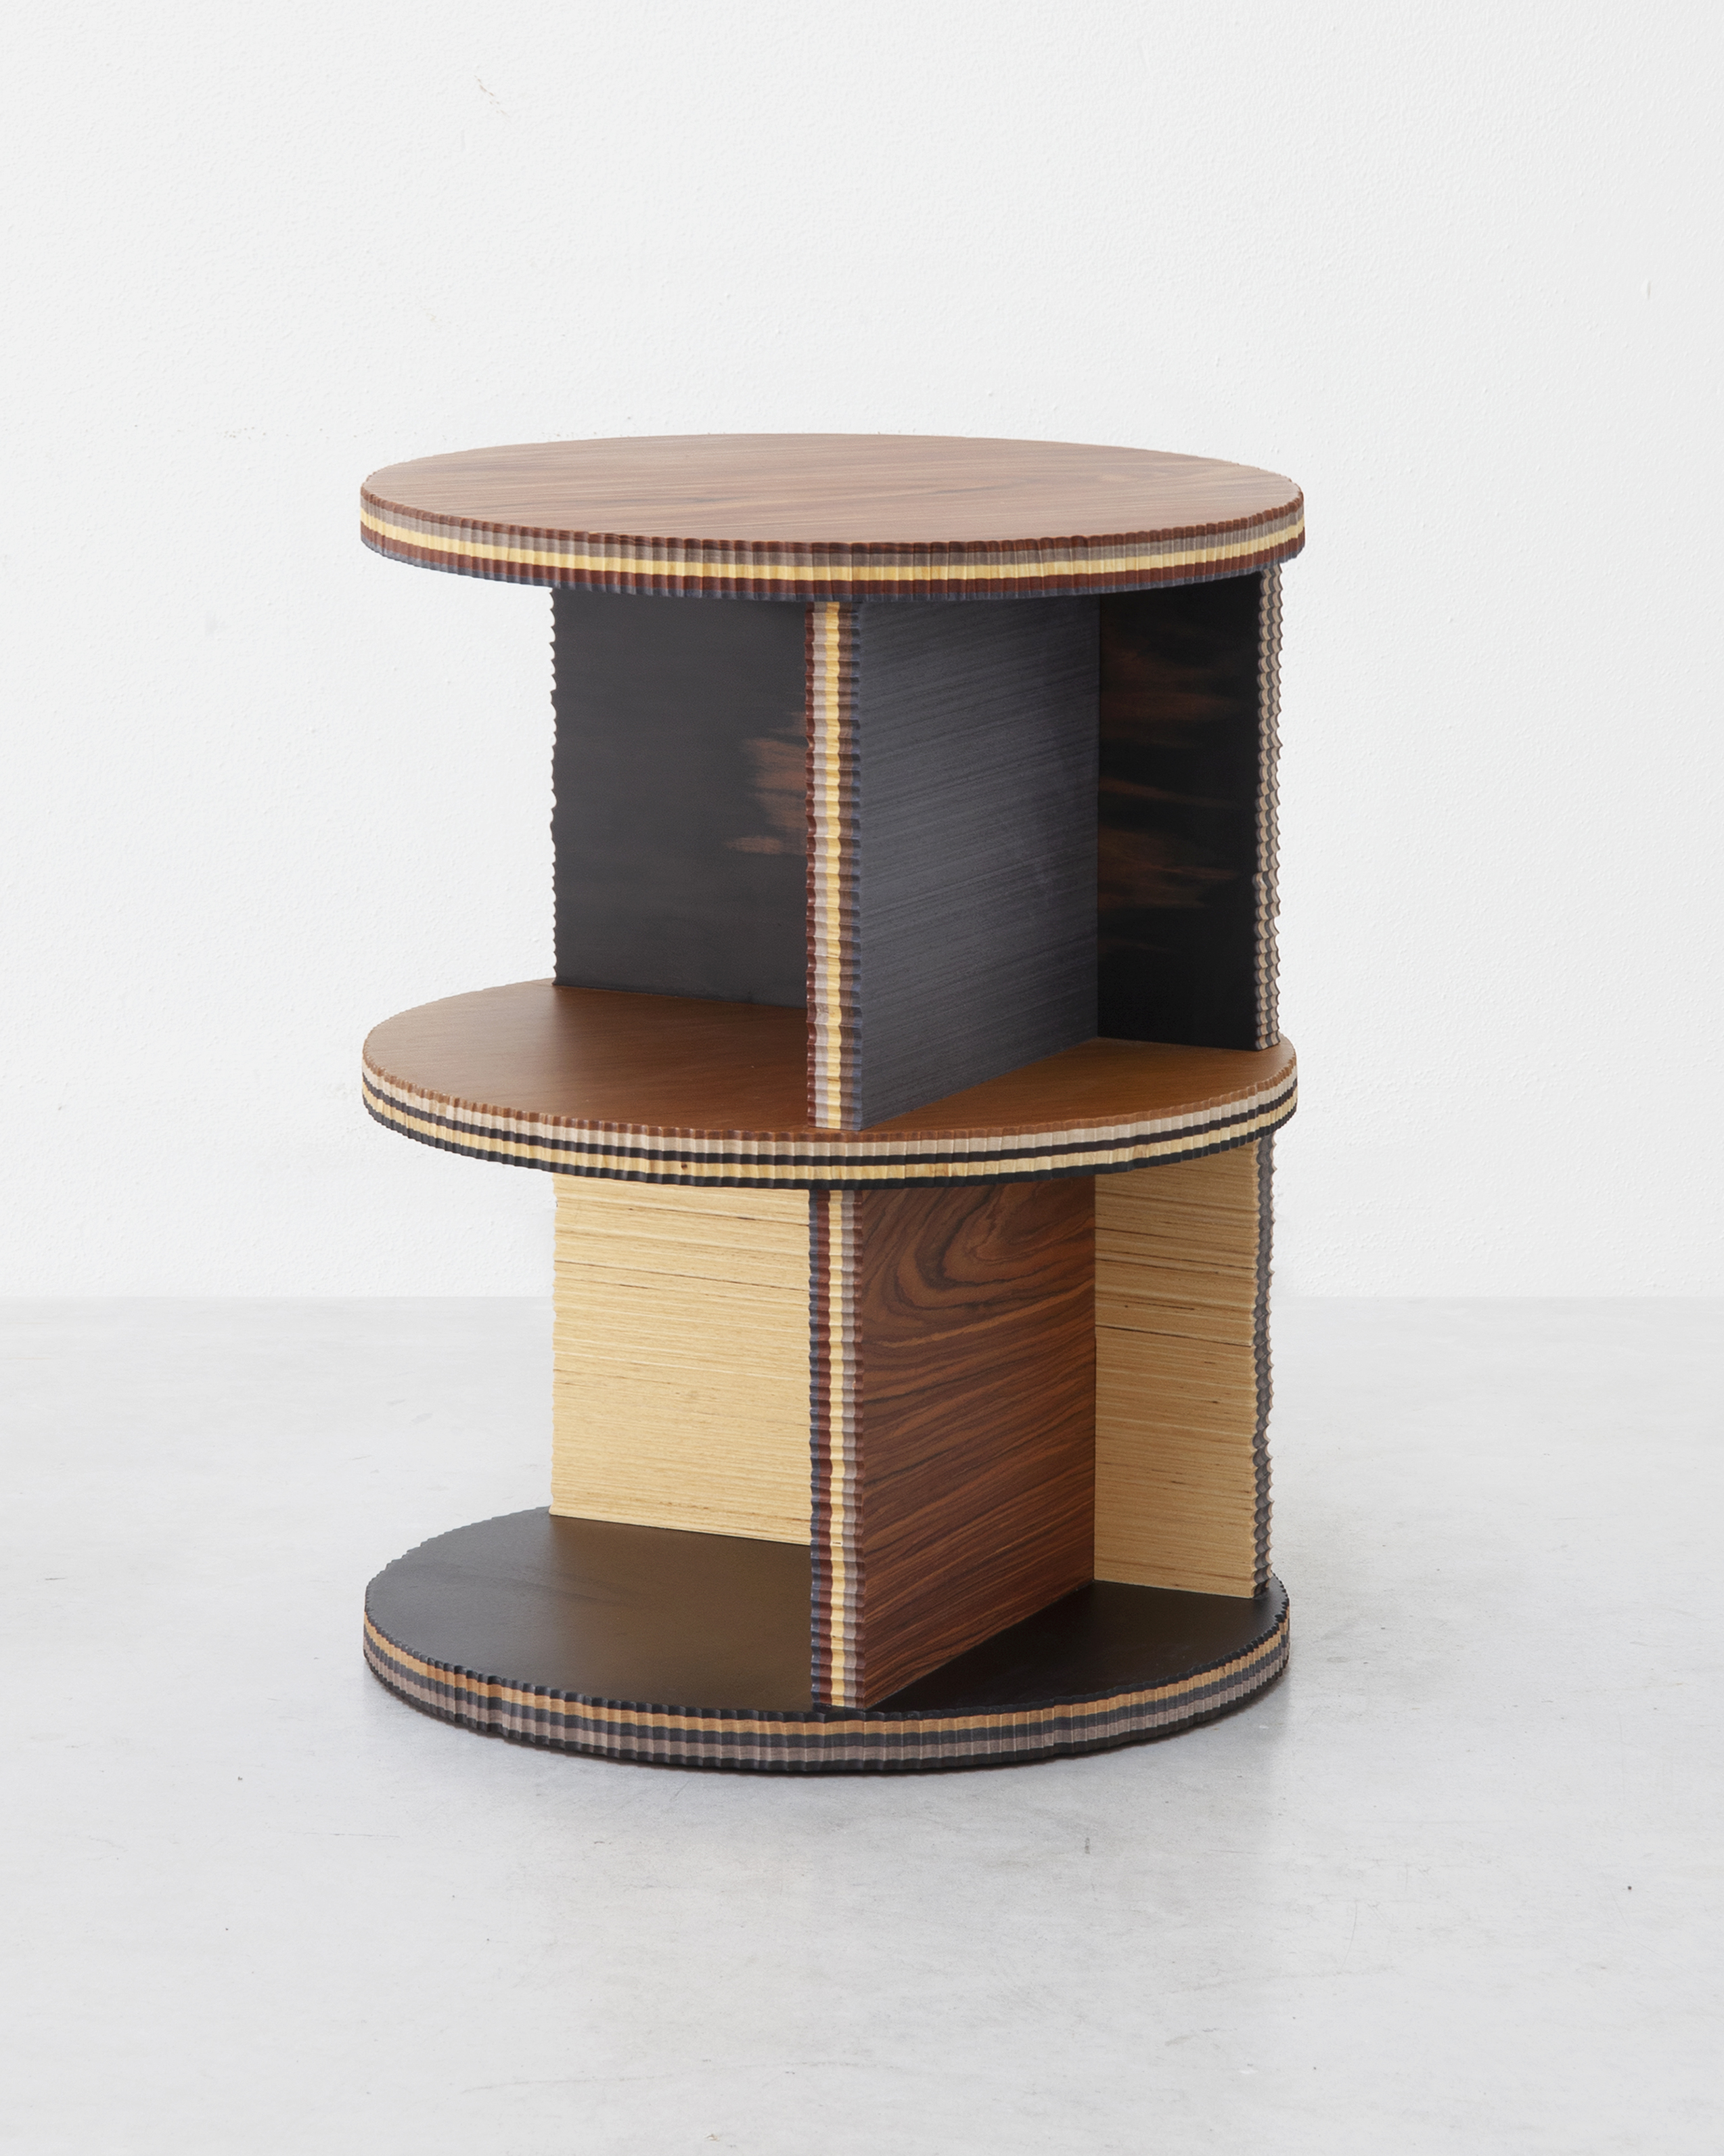 Marco Campardo designed George collection with reclaimed Alpi Wood and Seeds London Gallery